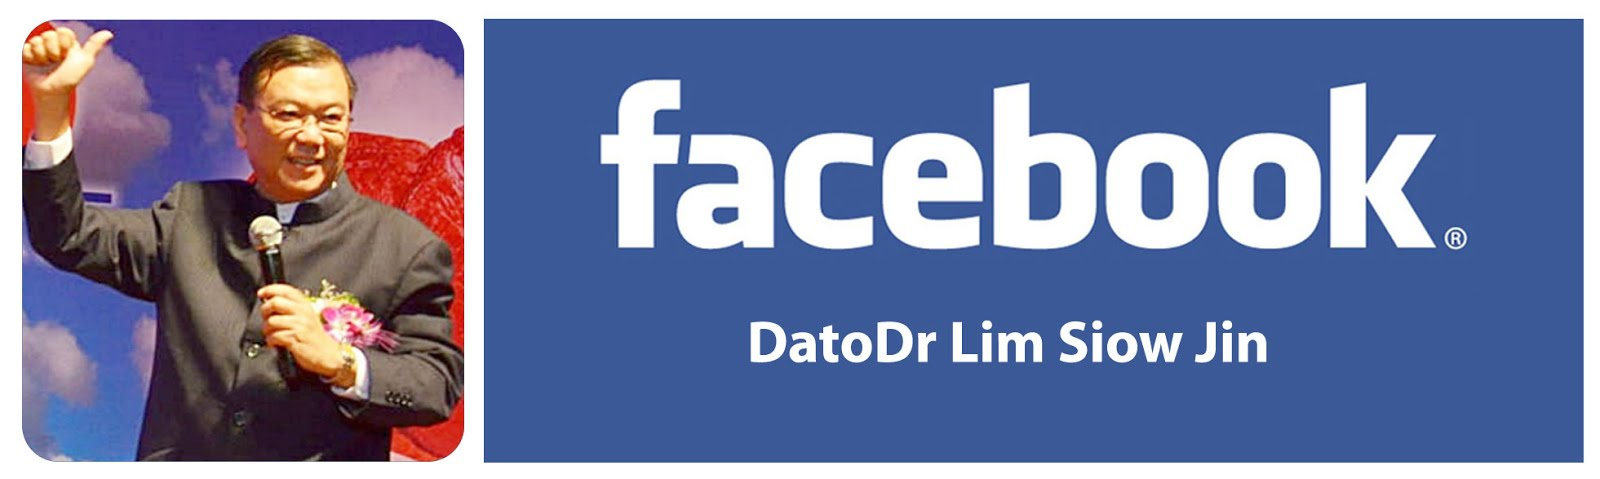 Official Facebook Account of Dato' Dr. Lim Siow Jin